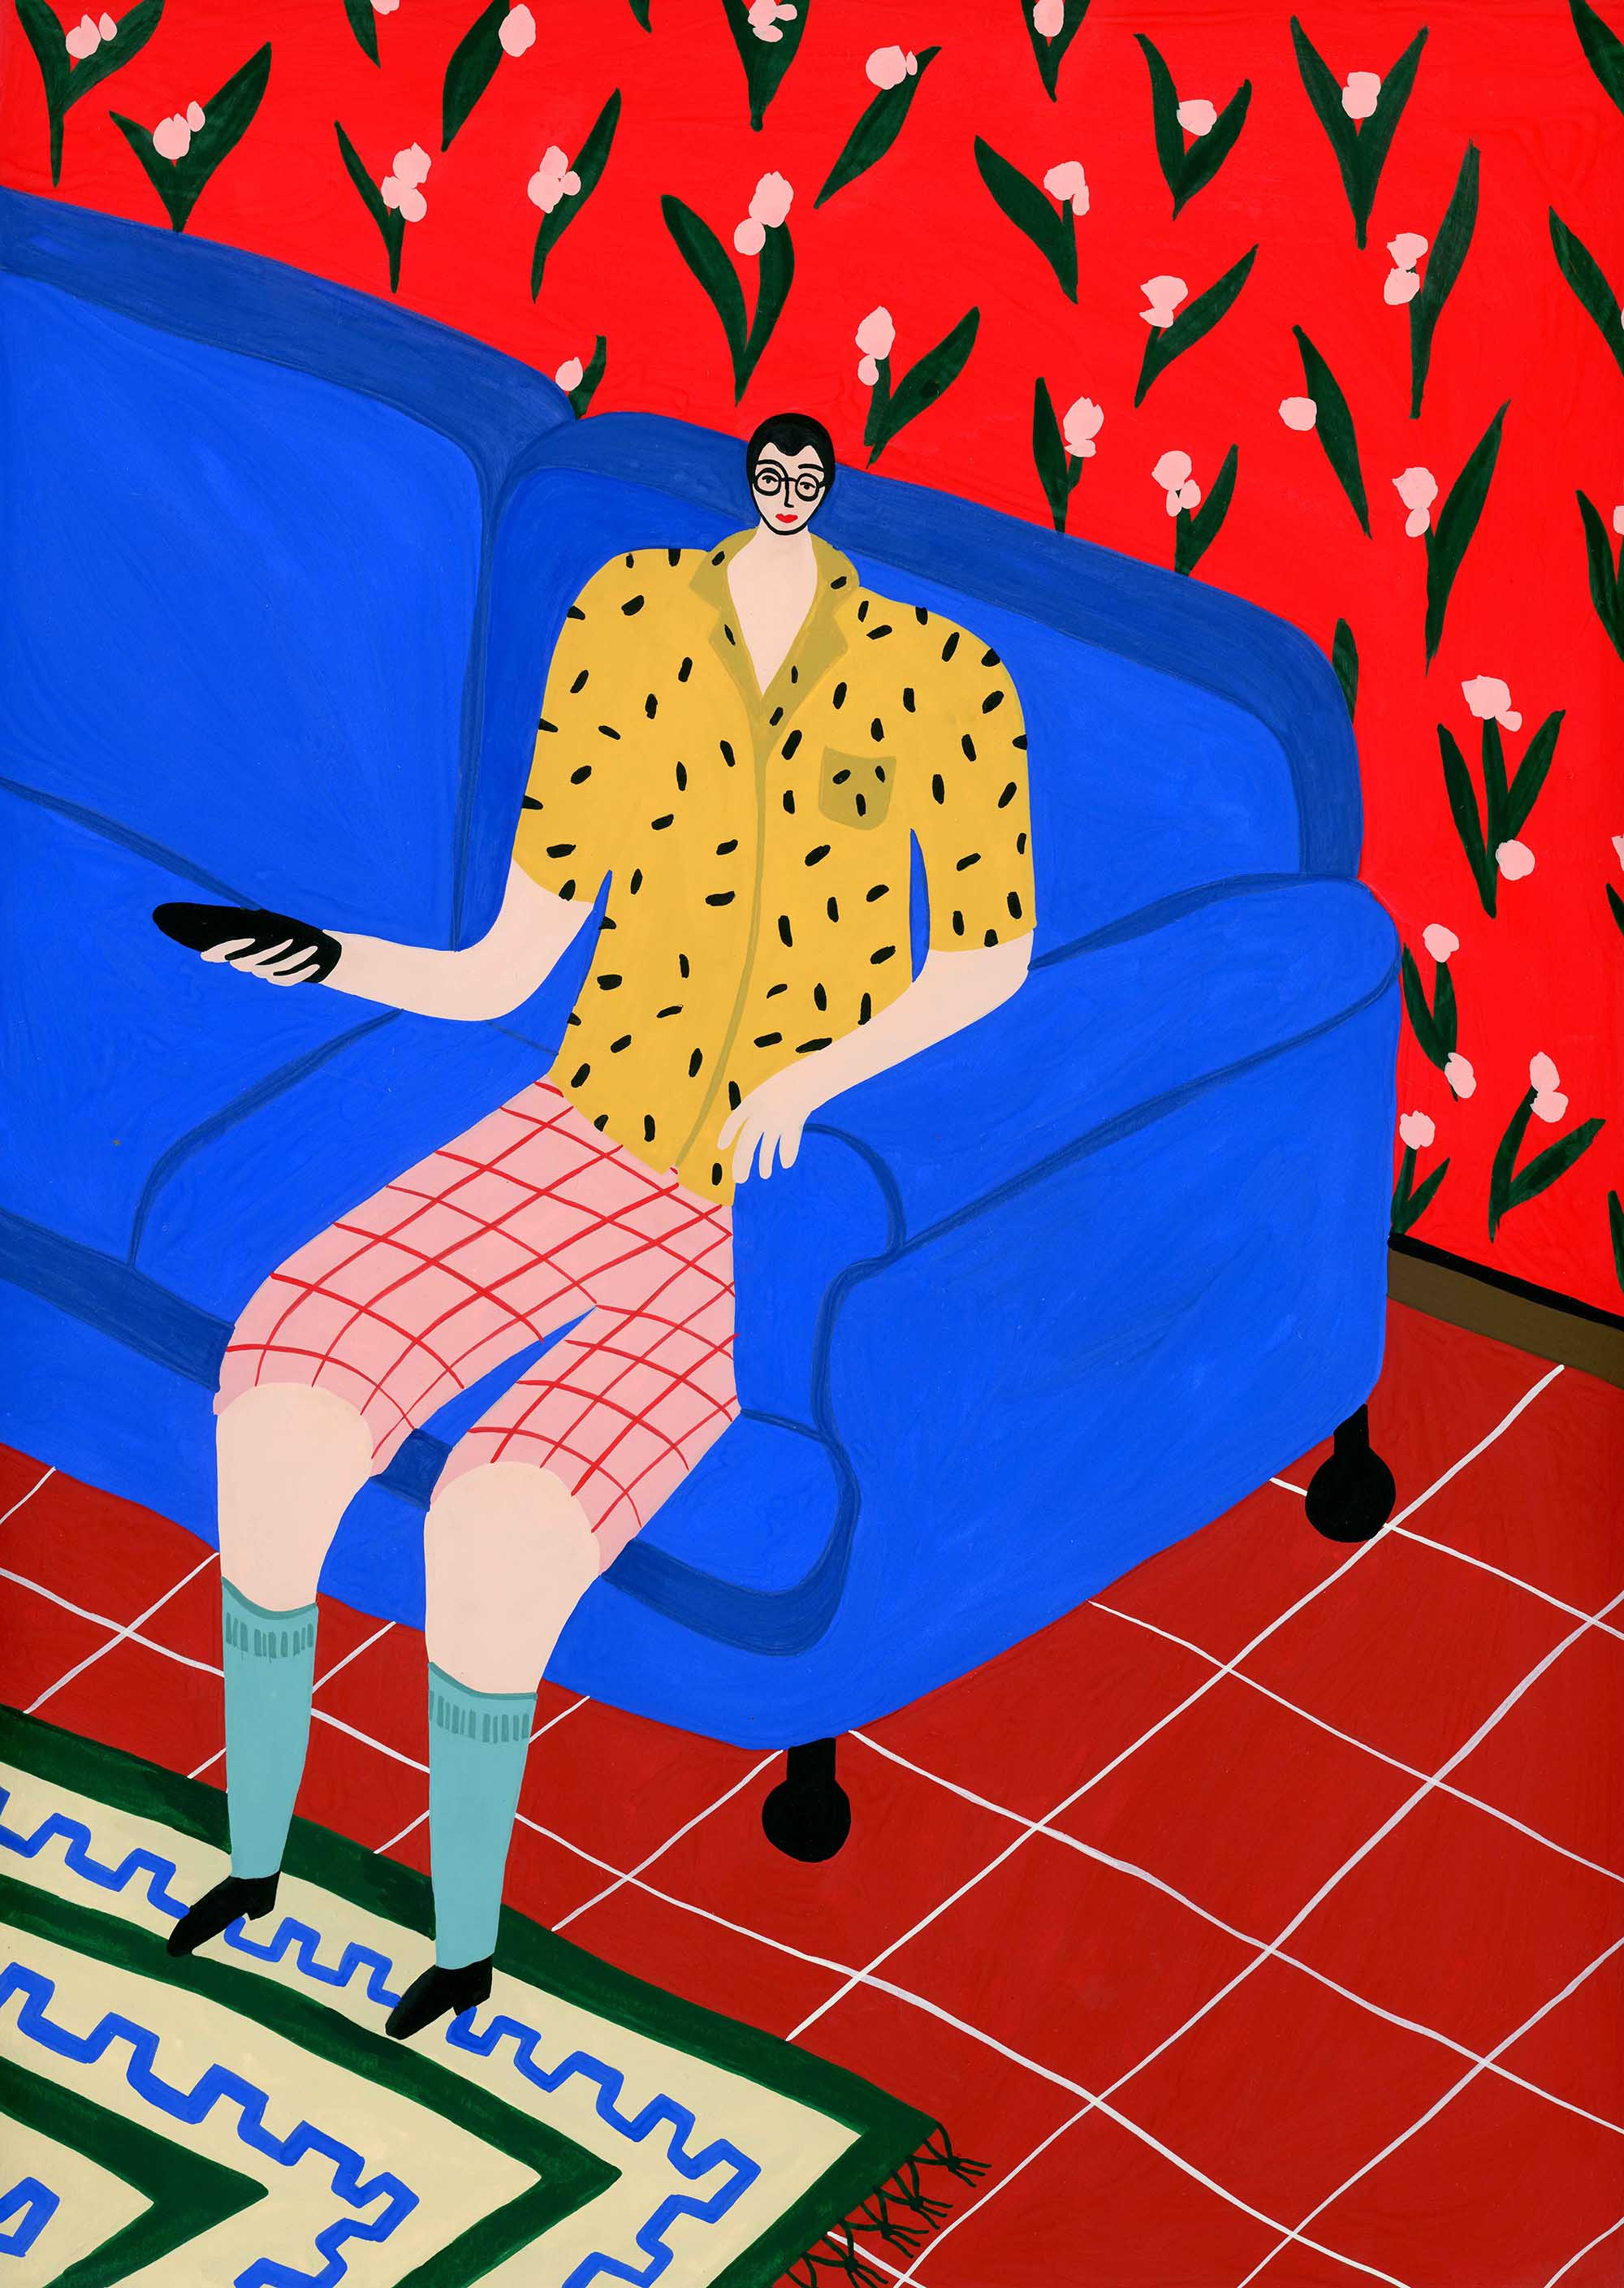 Patterned Man by Tara Deacon